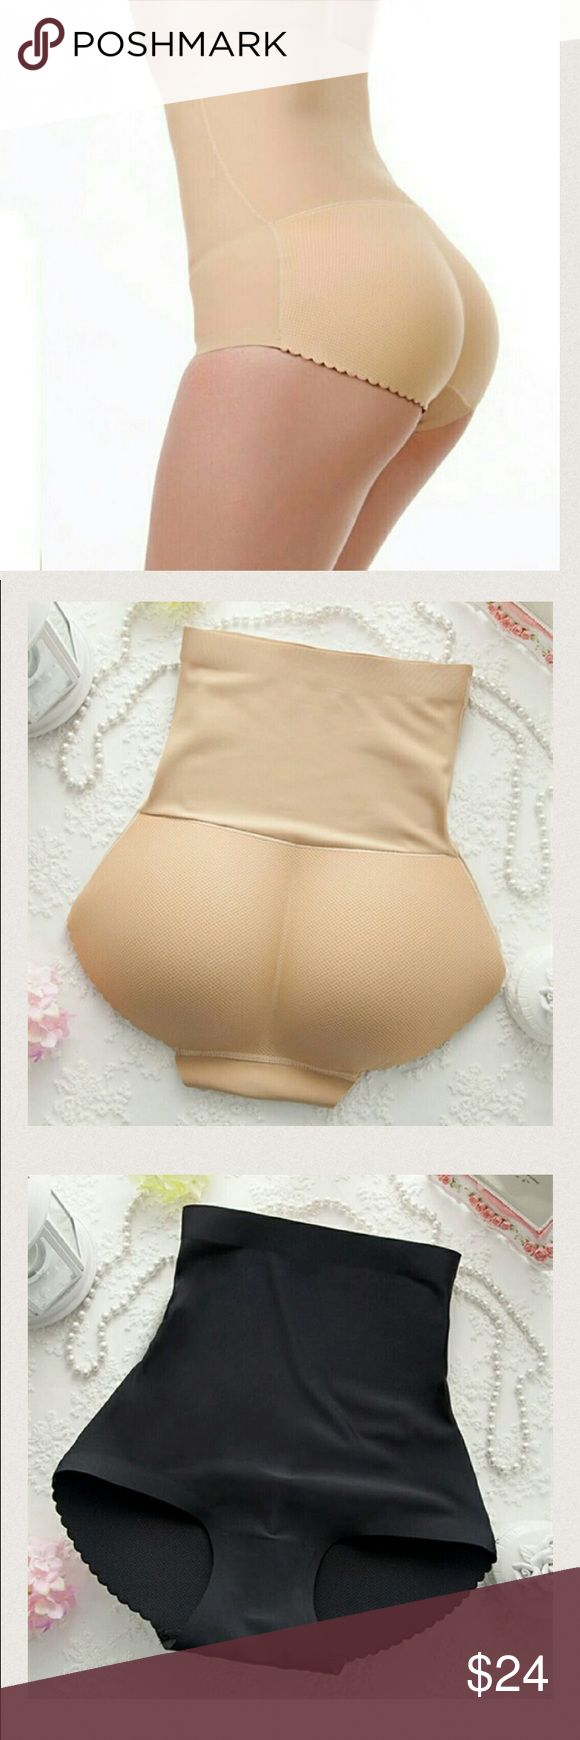 """Padded panty High Waist Briefs sexy Charming Women Padded panty High Waist Briefs sexy Charming Women slim underwear bottom hip up briefs Butt Enhancer body shaper panties  AVAILABLE  IN BLACK AND BEIGE  FROM SMALL TO XL  SIZES RUNS VERY SMALL   SIZE CHART """" M FROM 23 TO 26.9 L FROM 27 TO 29.9 XL FROM 30 TO 32"""" Intimates & Sleepwear Shapewear"""